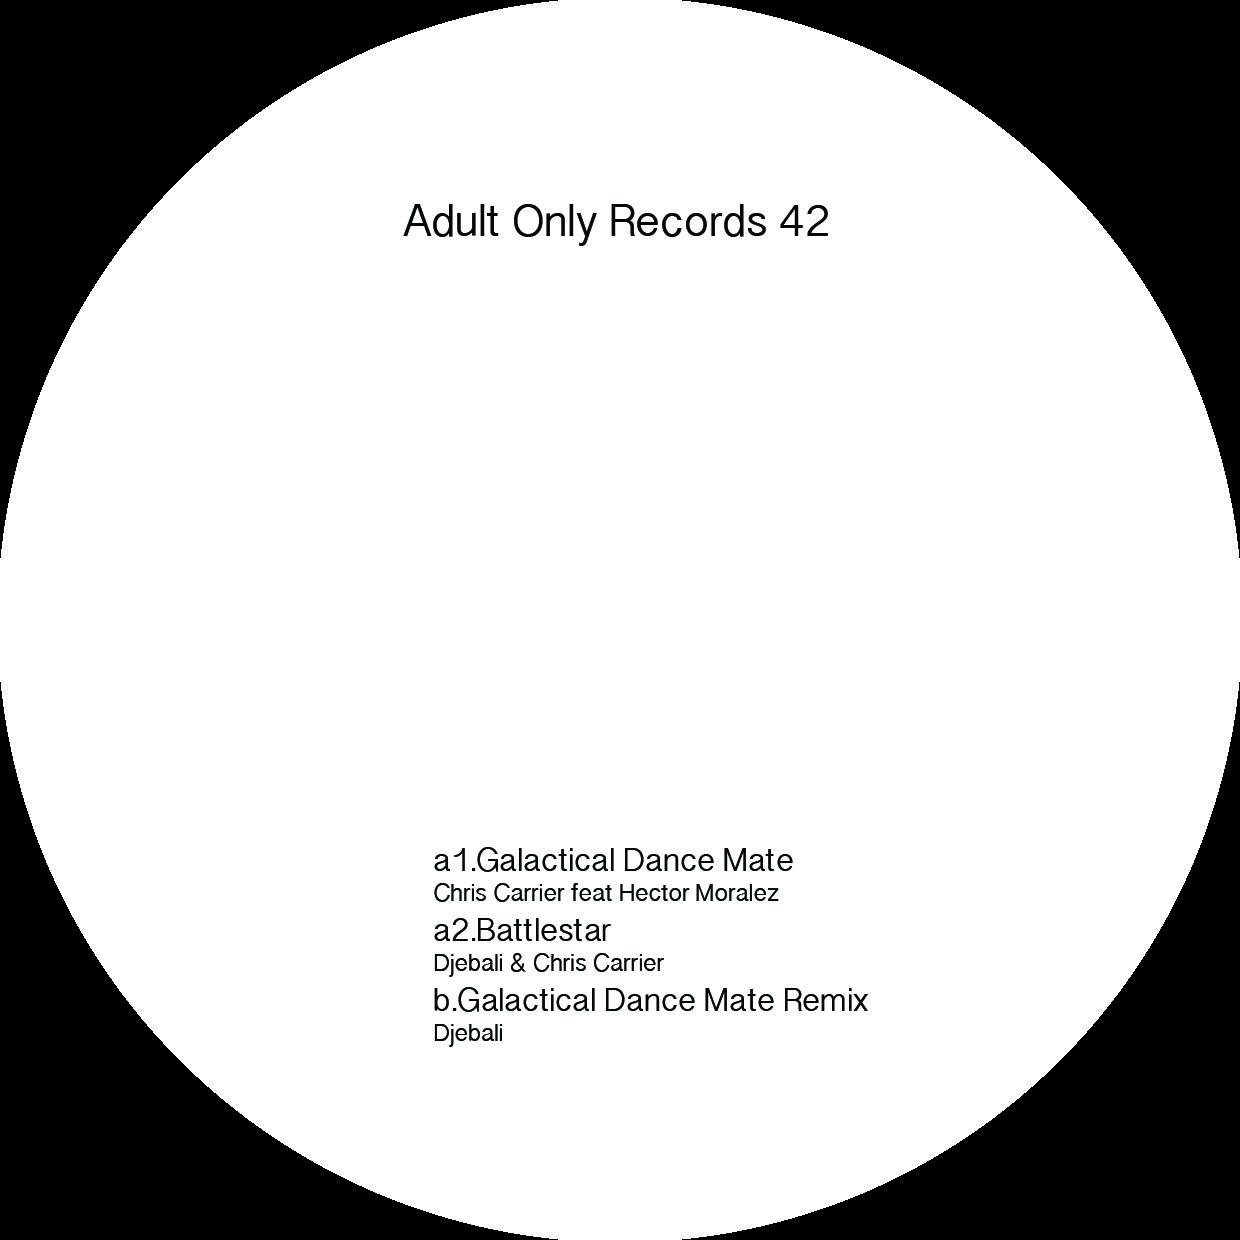 Sound Clips | Adult Only 42 | Galactical Dance Mate